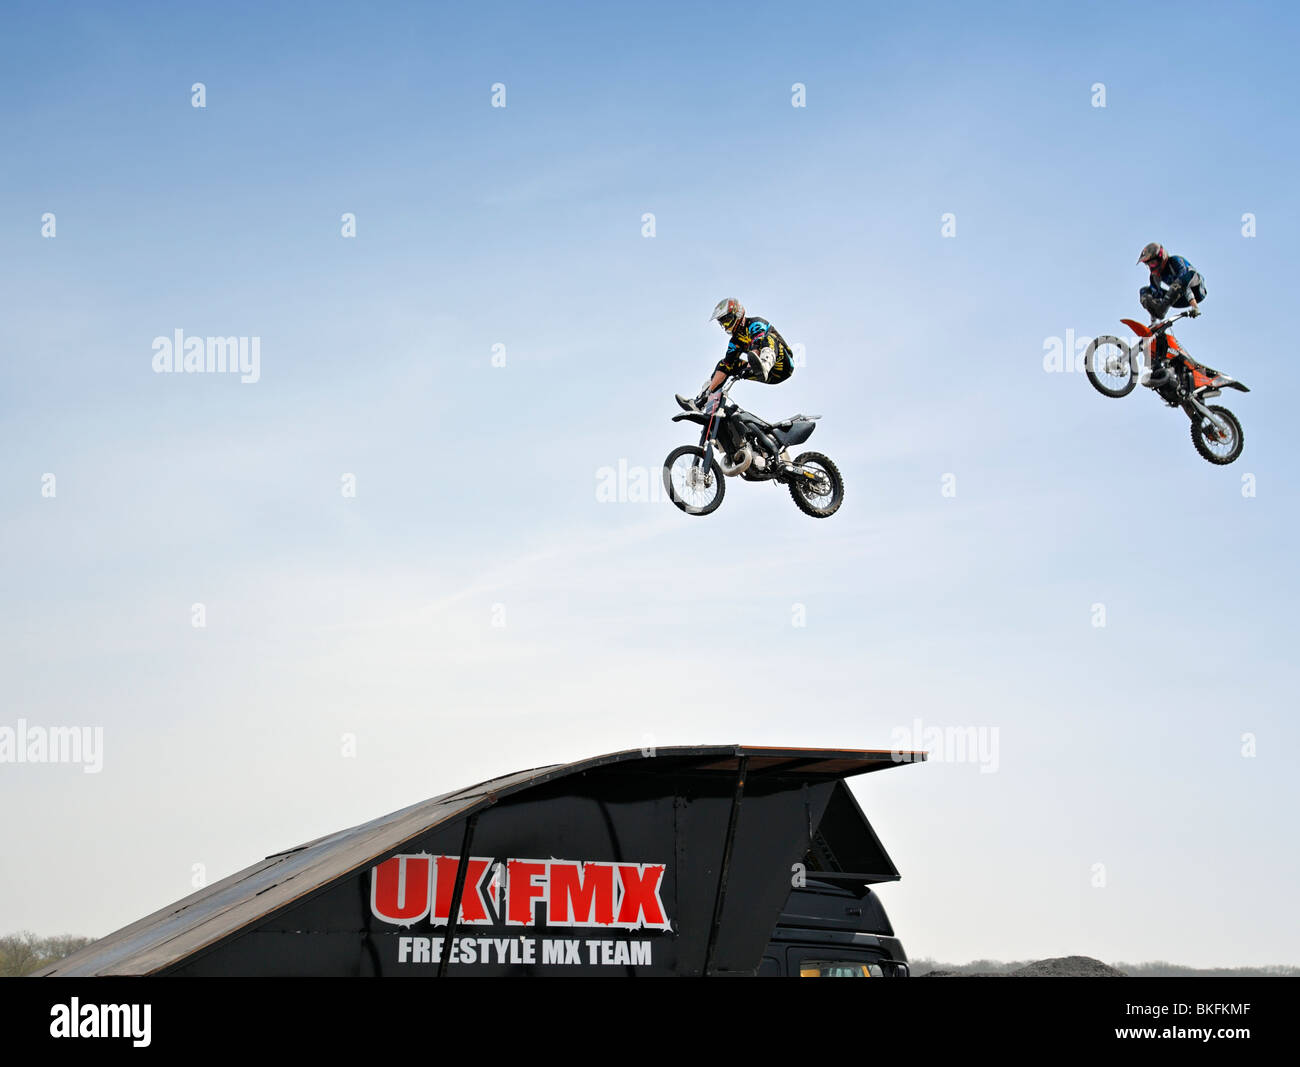 Freestyle motorbikes in the air. - Stock Image